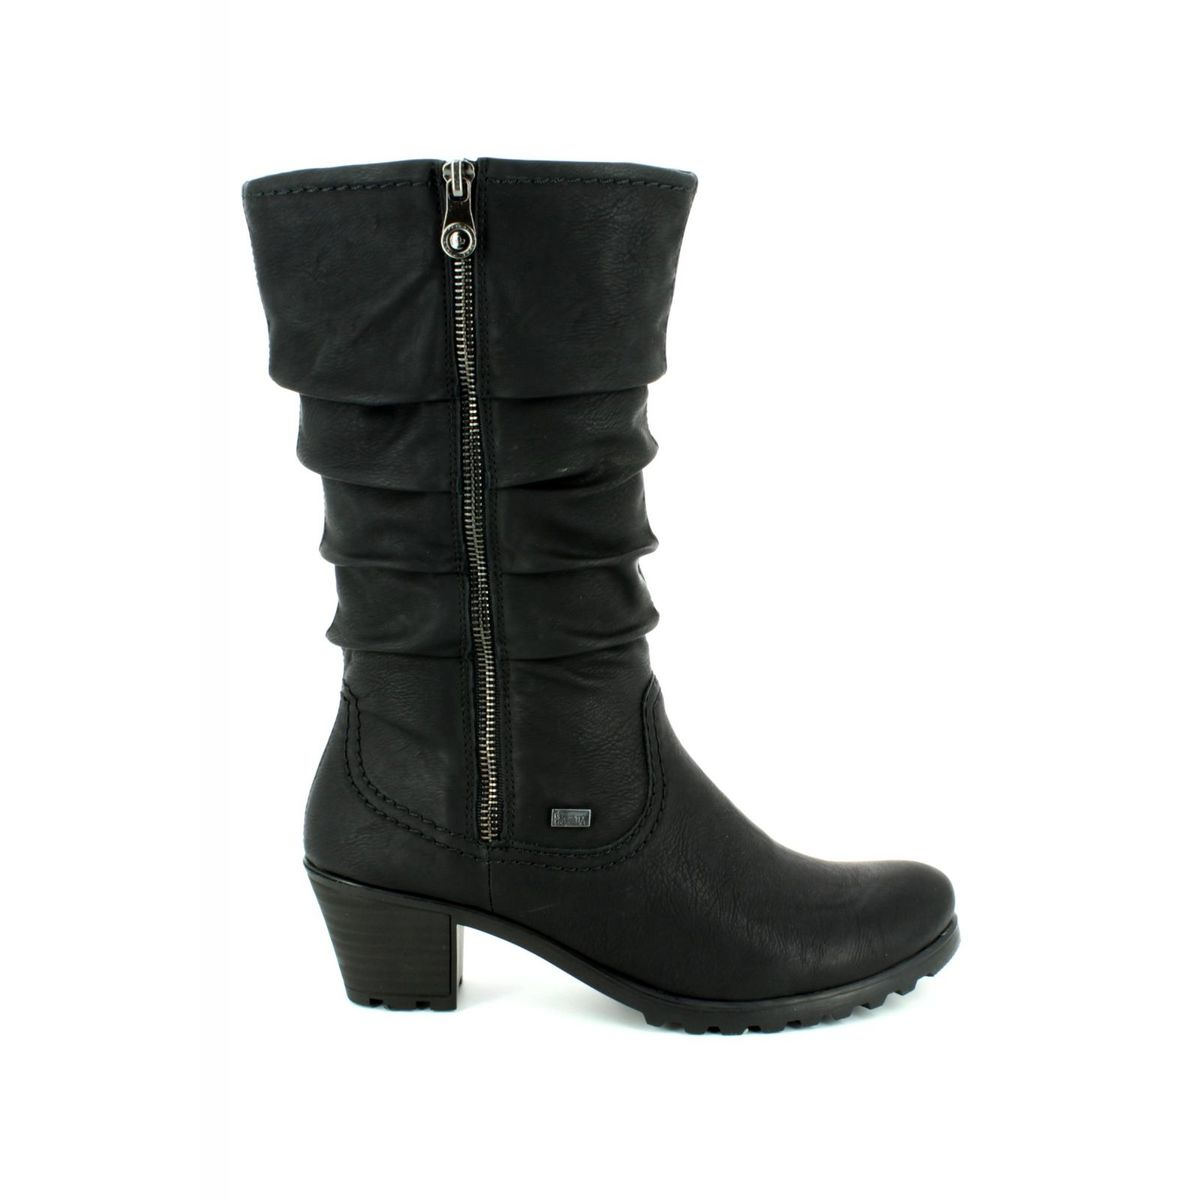 efe0a77943 Rieker Knee-high Boots - Black - Y8039-00 GREECELO TEX